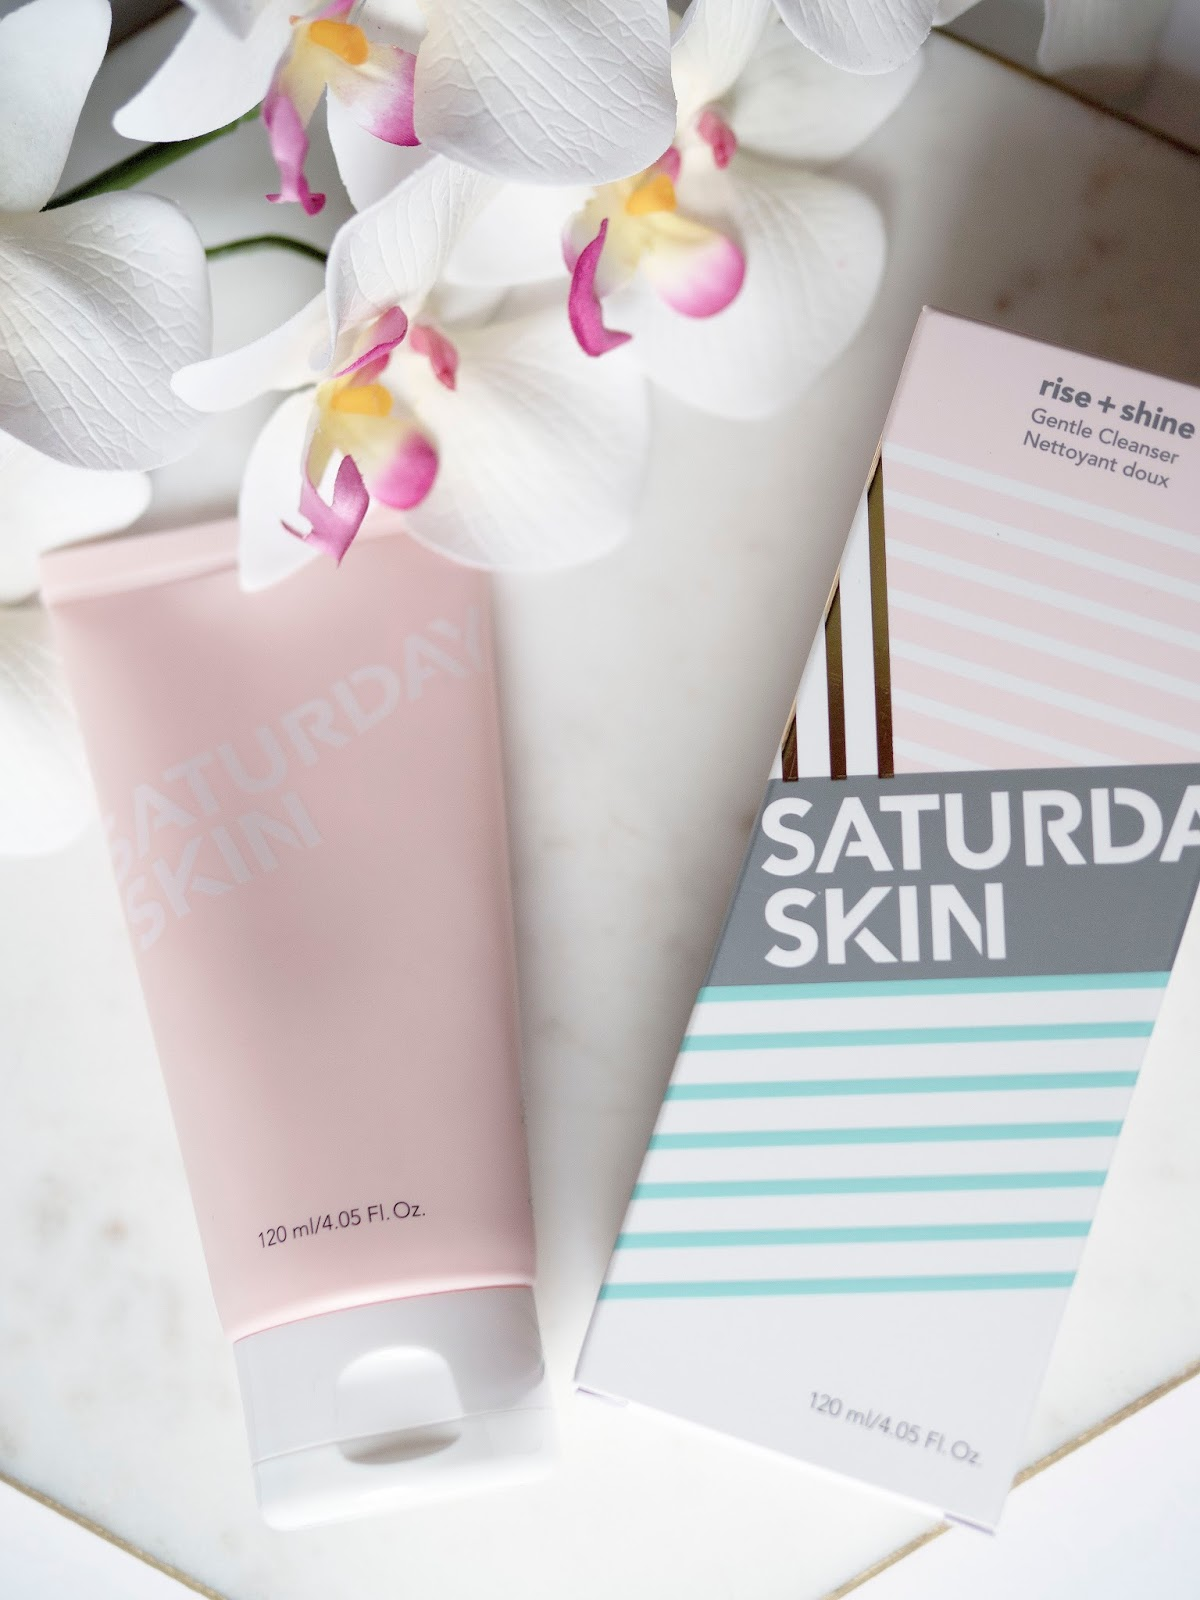 Saturday Skin's Rise + Shine Gentle Cleanser is a Skin Cleansing Warrior